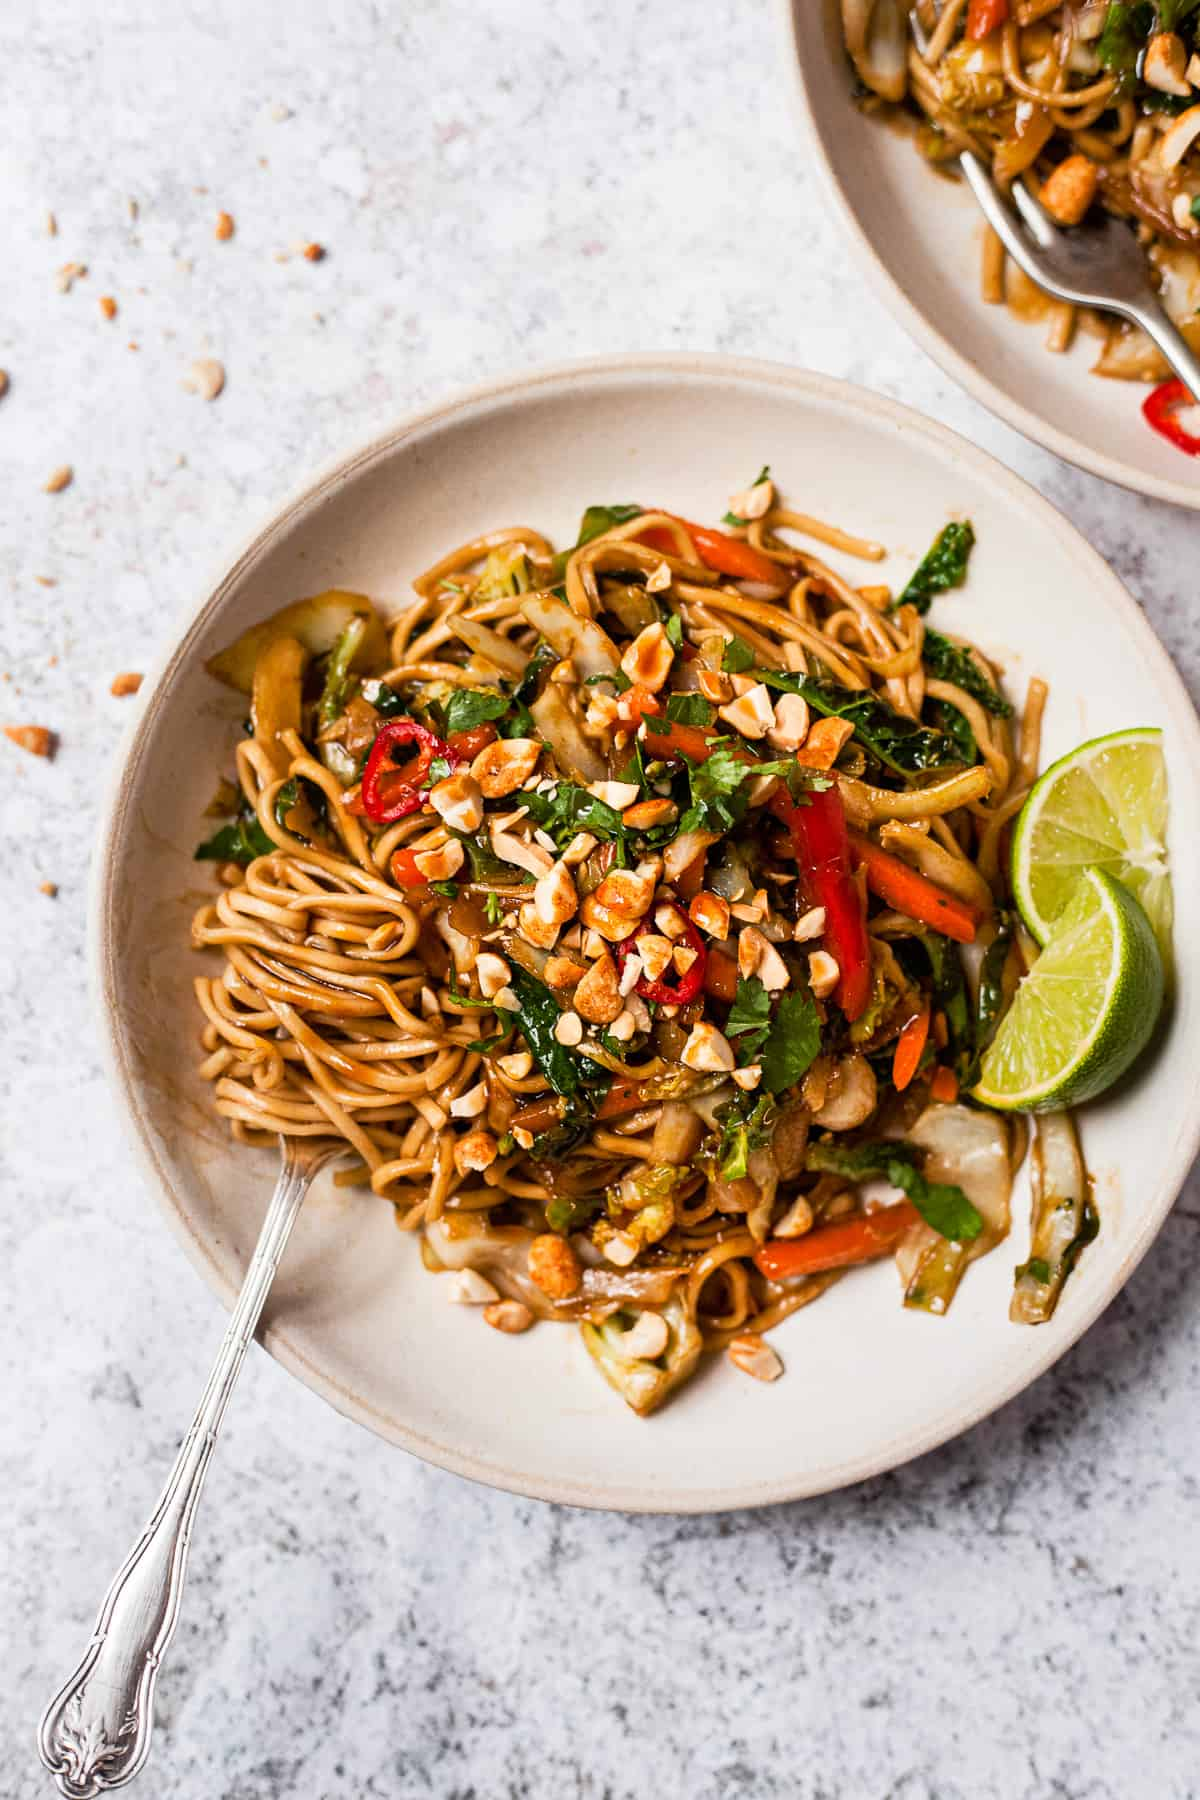 vegetable stir fry noodles in a white bowl with a fork.